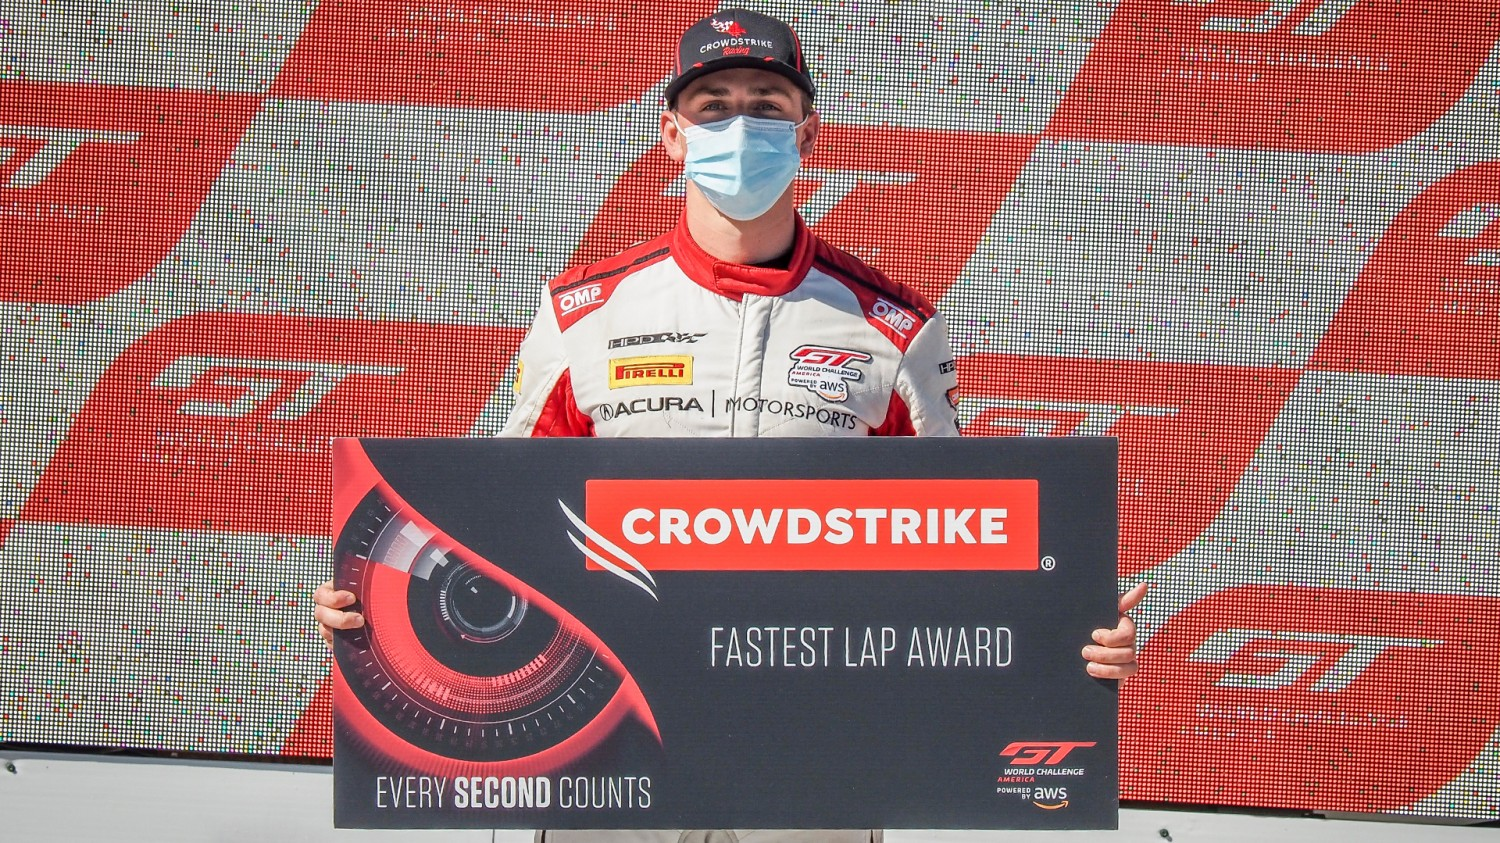 CrowdStrike Fastest Lap Award - Every Second Counts